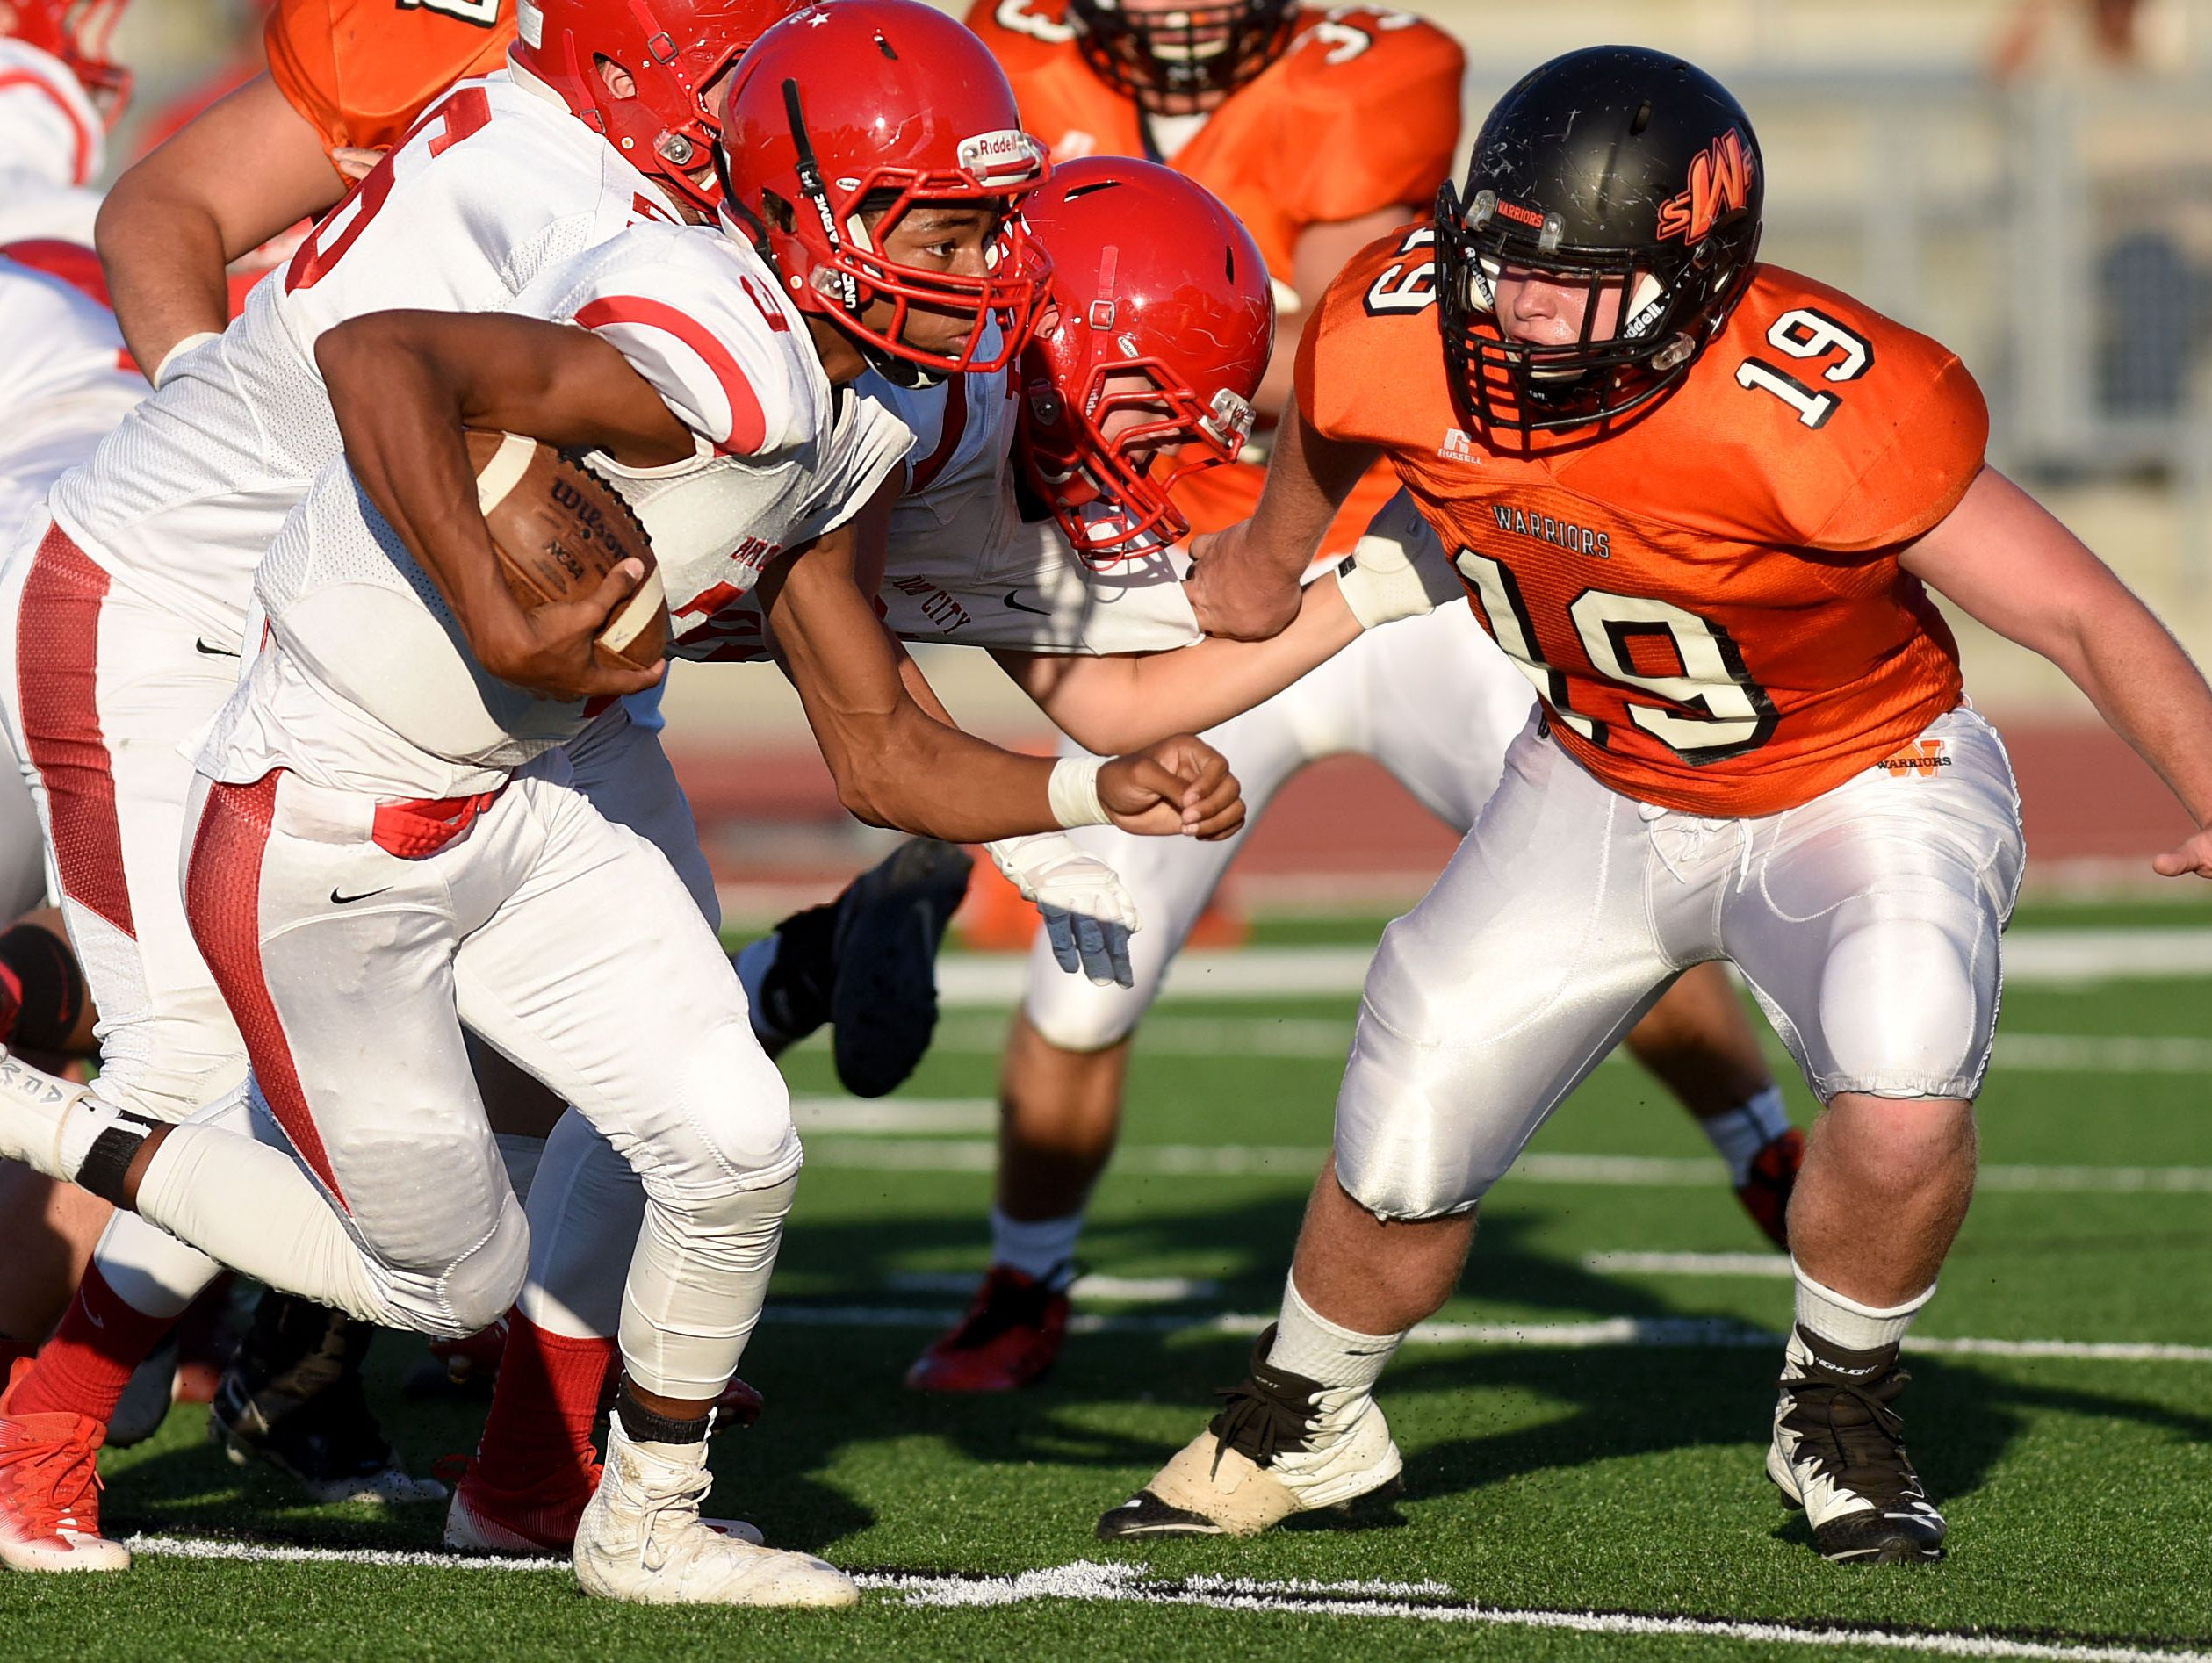 Rapid City Central's Kailleb Walton-Blanden (3) eludes Washington's Dominick Warmbein during their game at Howard Wood Field on Friday.